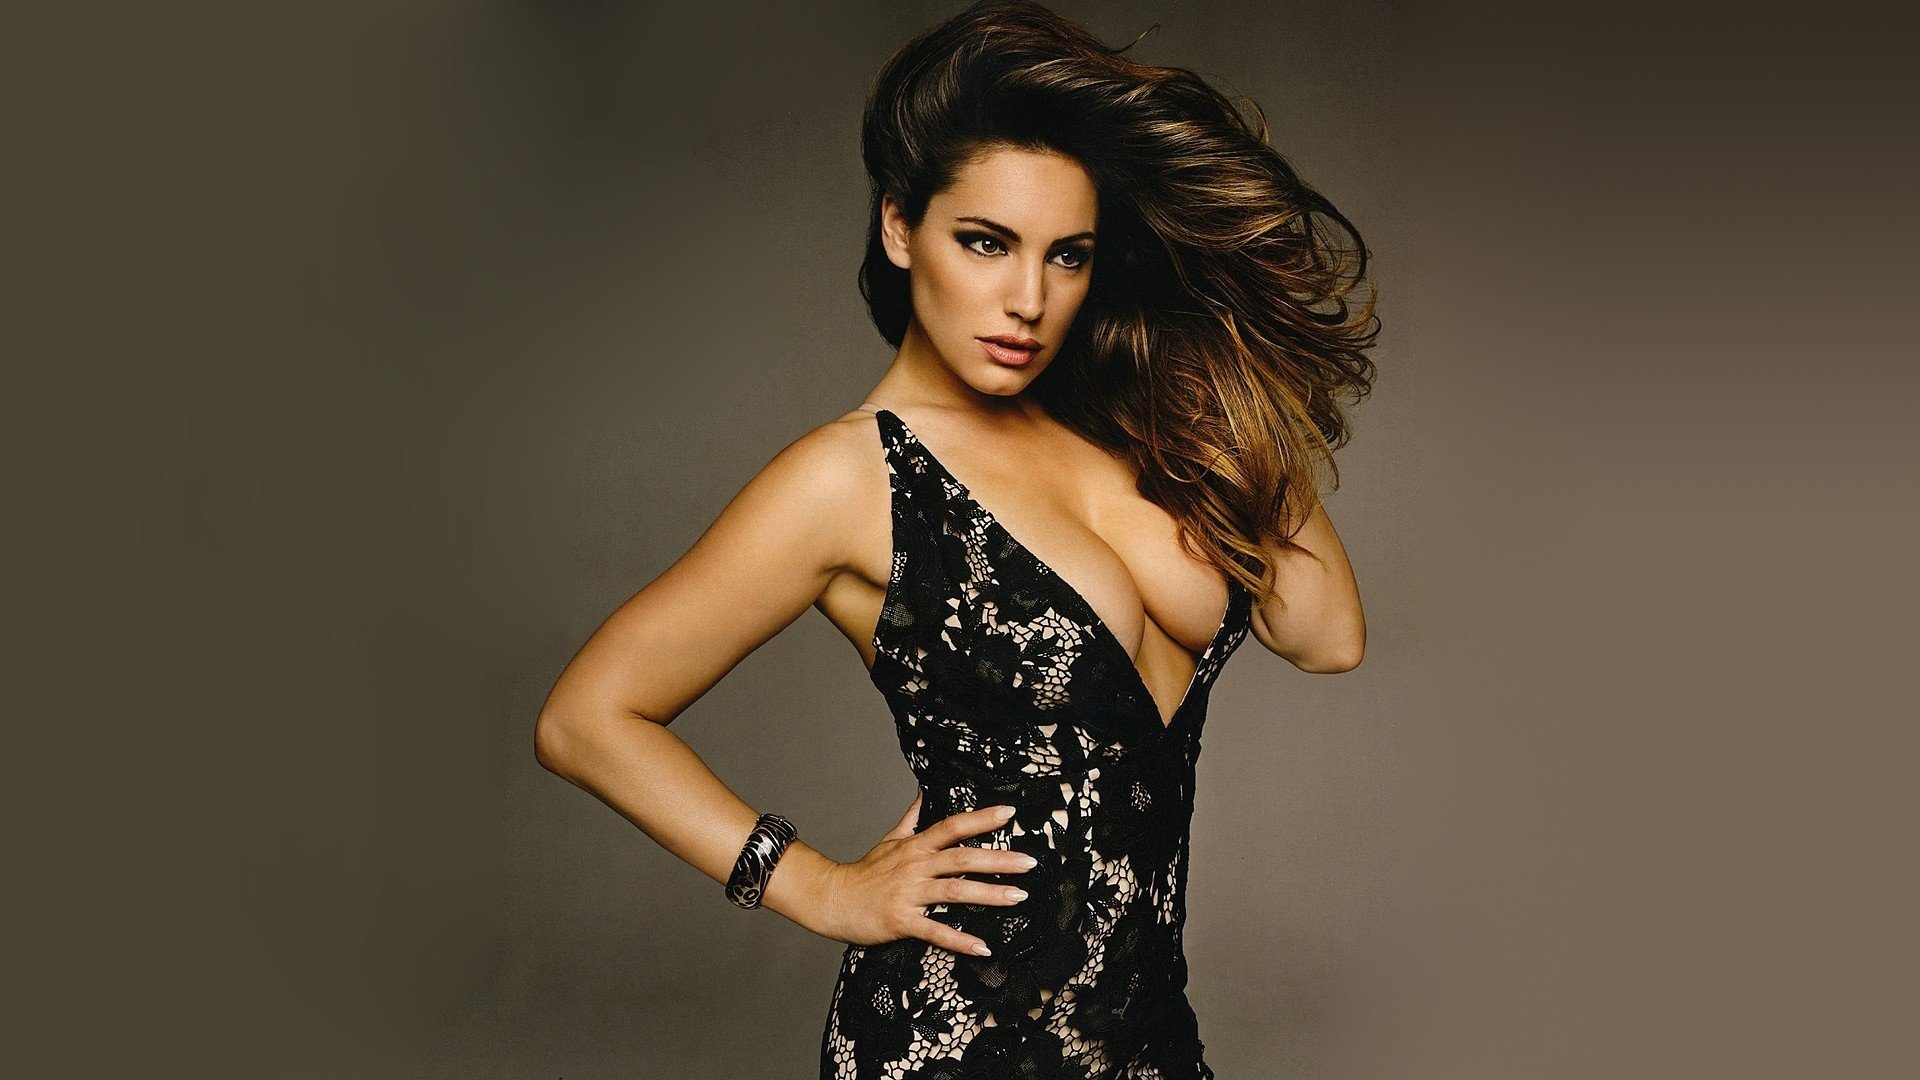 Kelly Brook Desktop